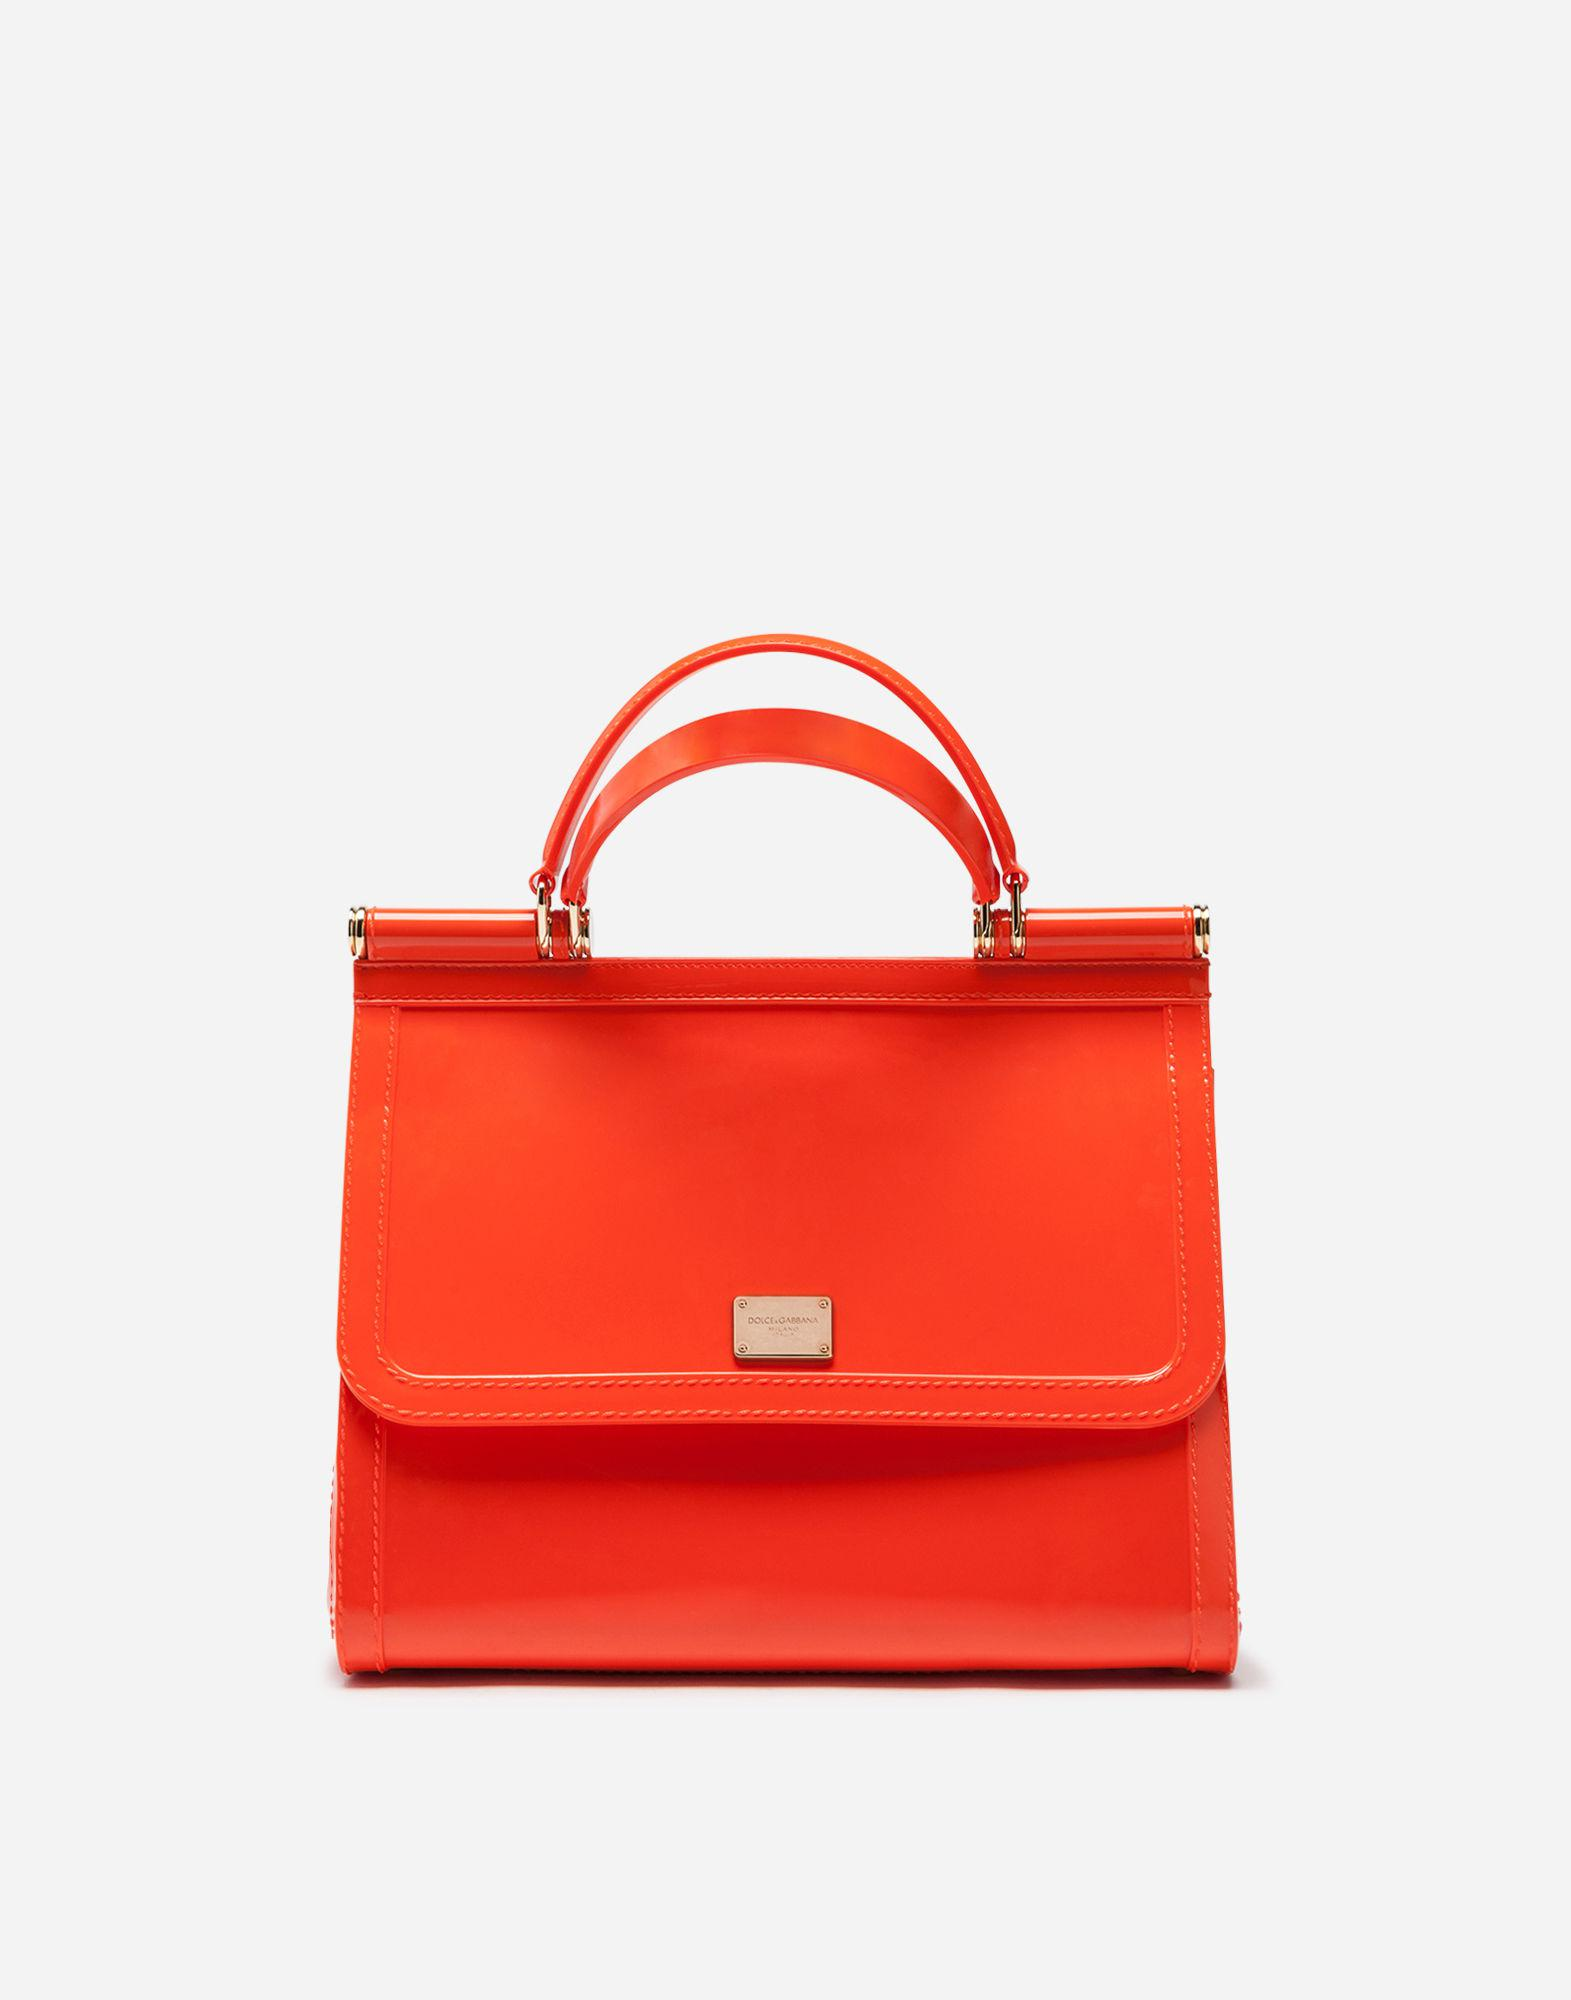 Lyst - Dolce   Gabbana Rubber Sicily Handbag in Orange 370b3cafaf102